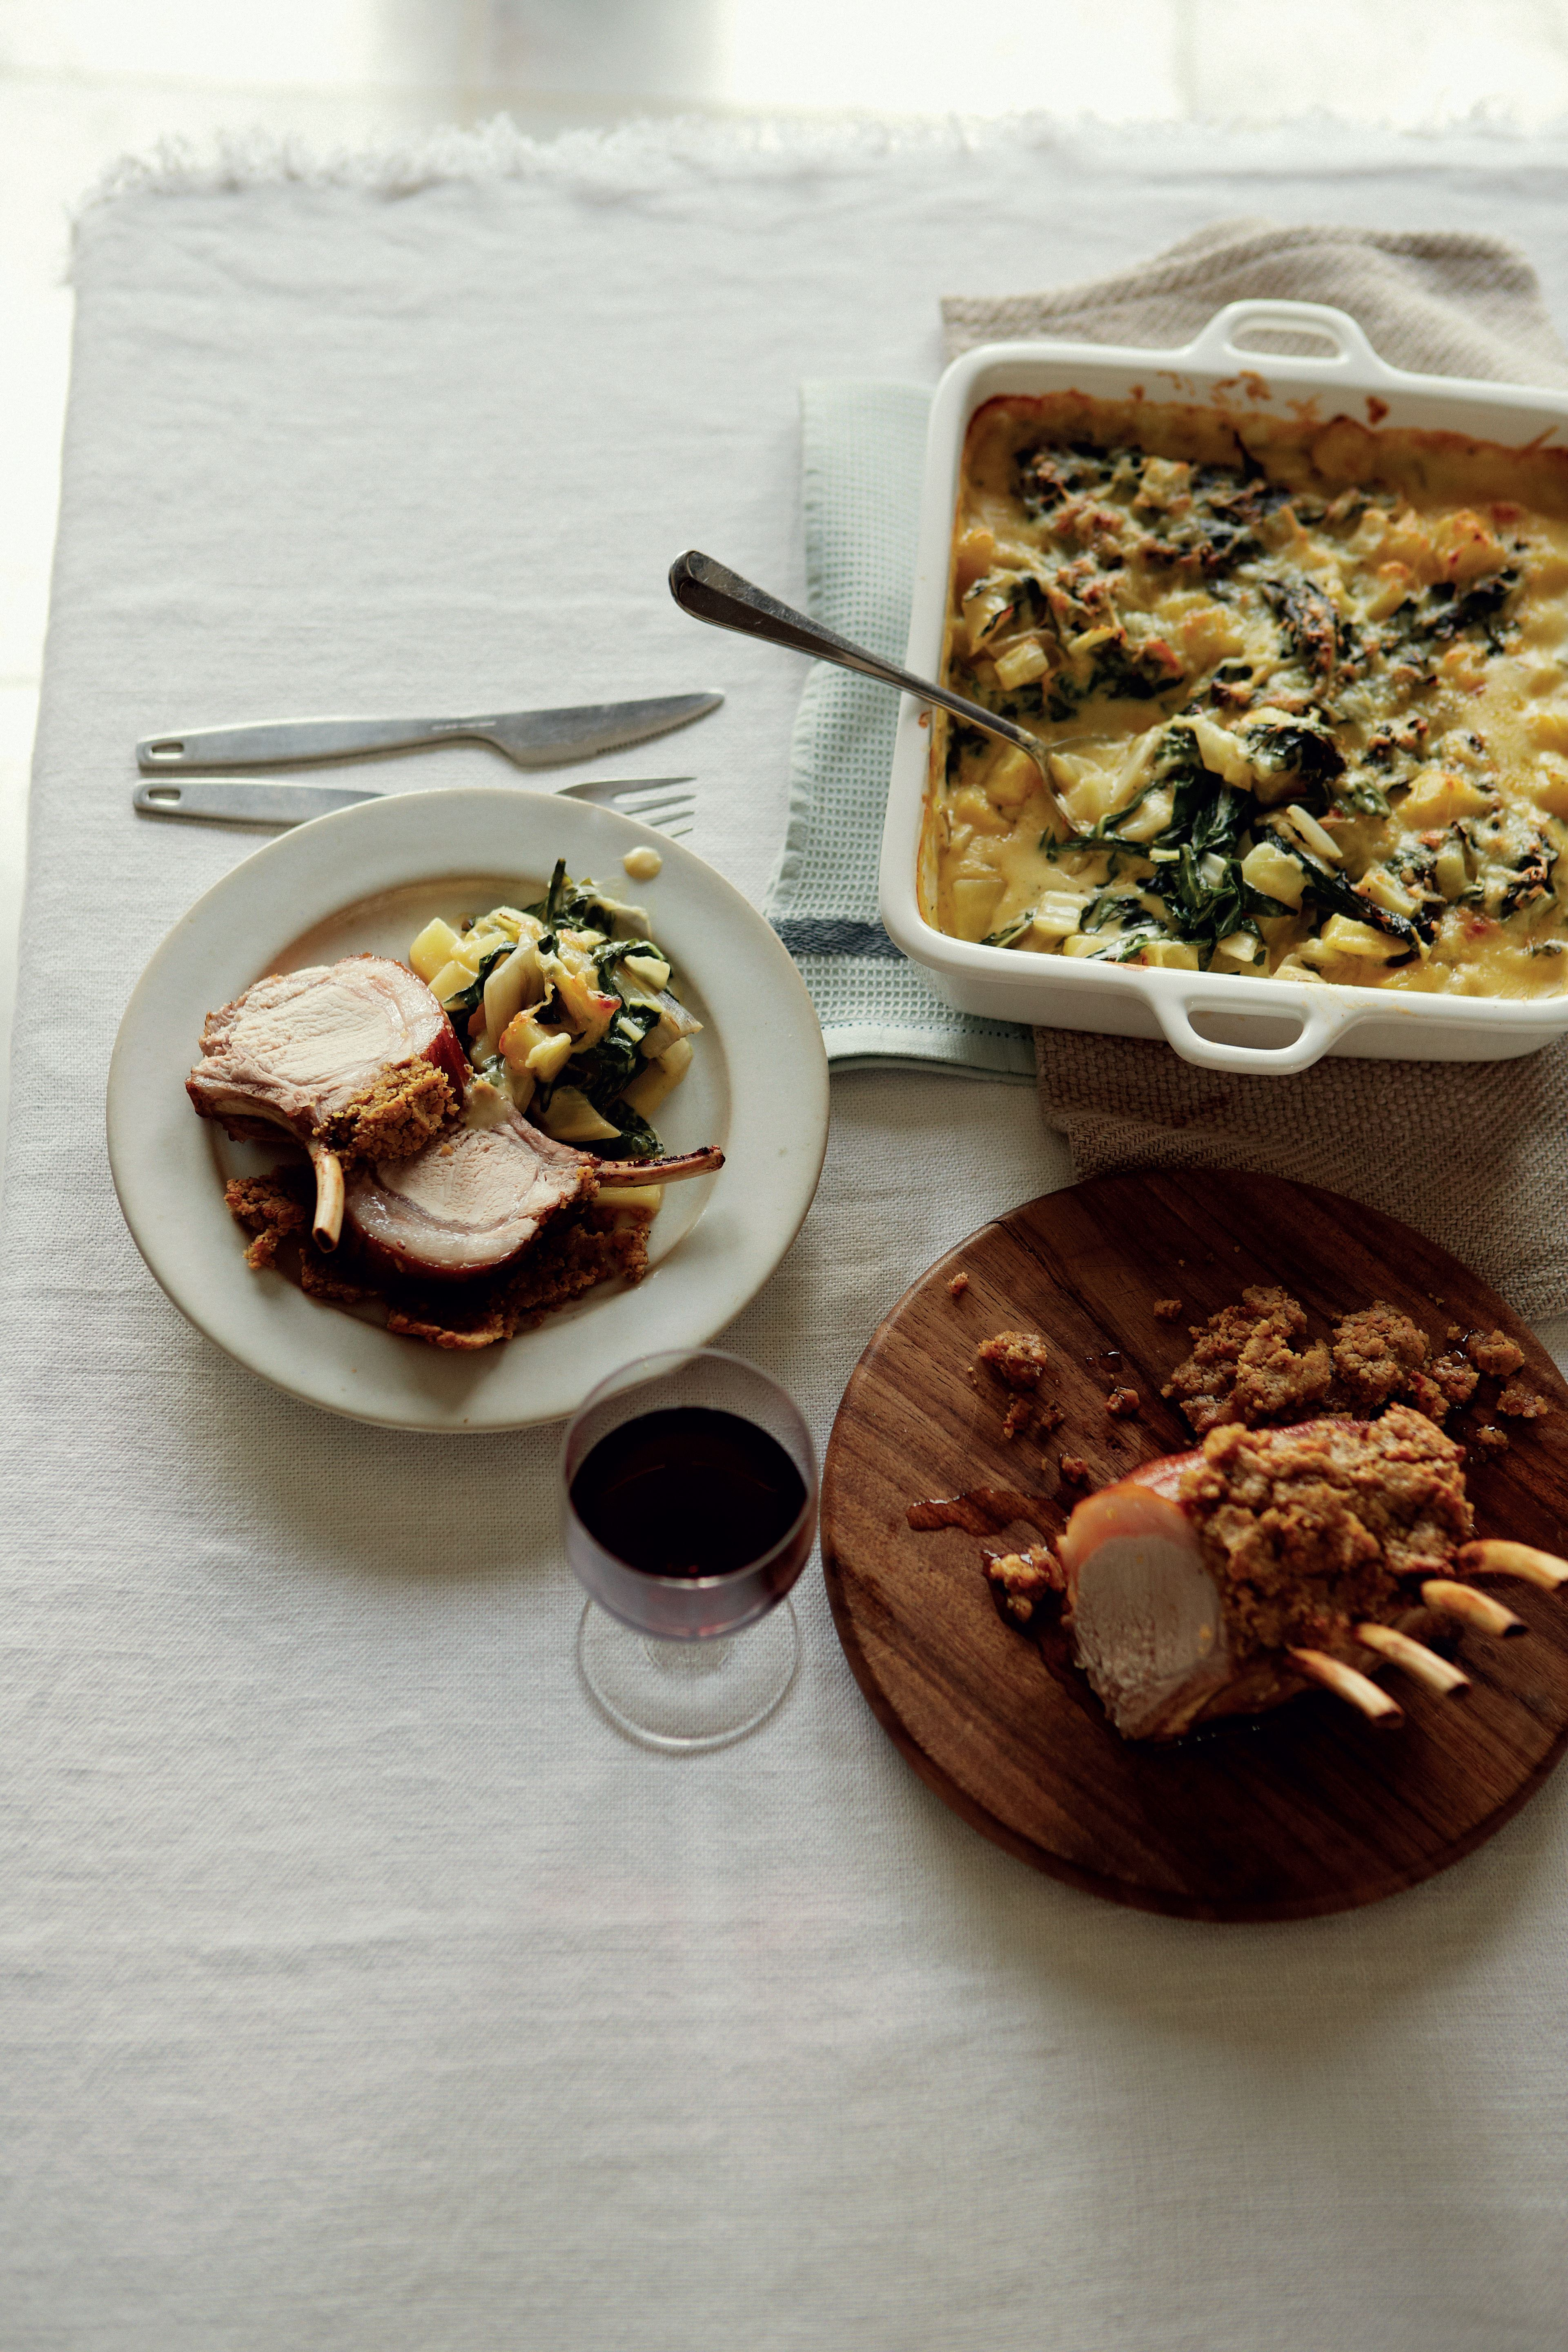 Beer-marinated rack of pork with Jeff's chard gratin